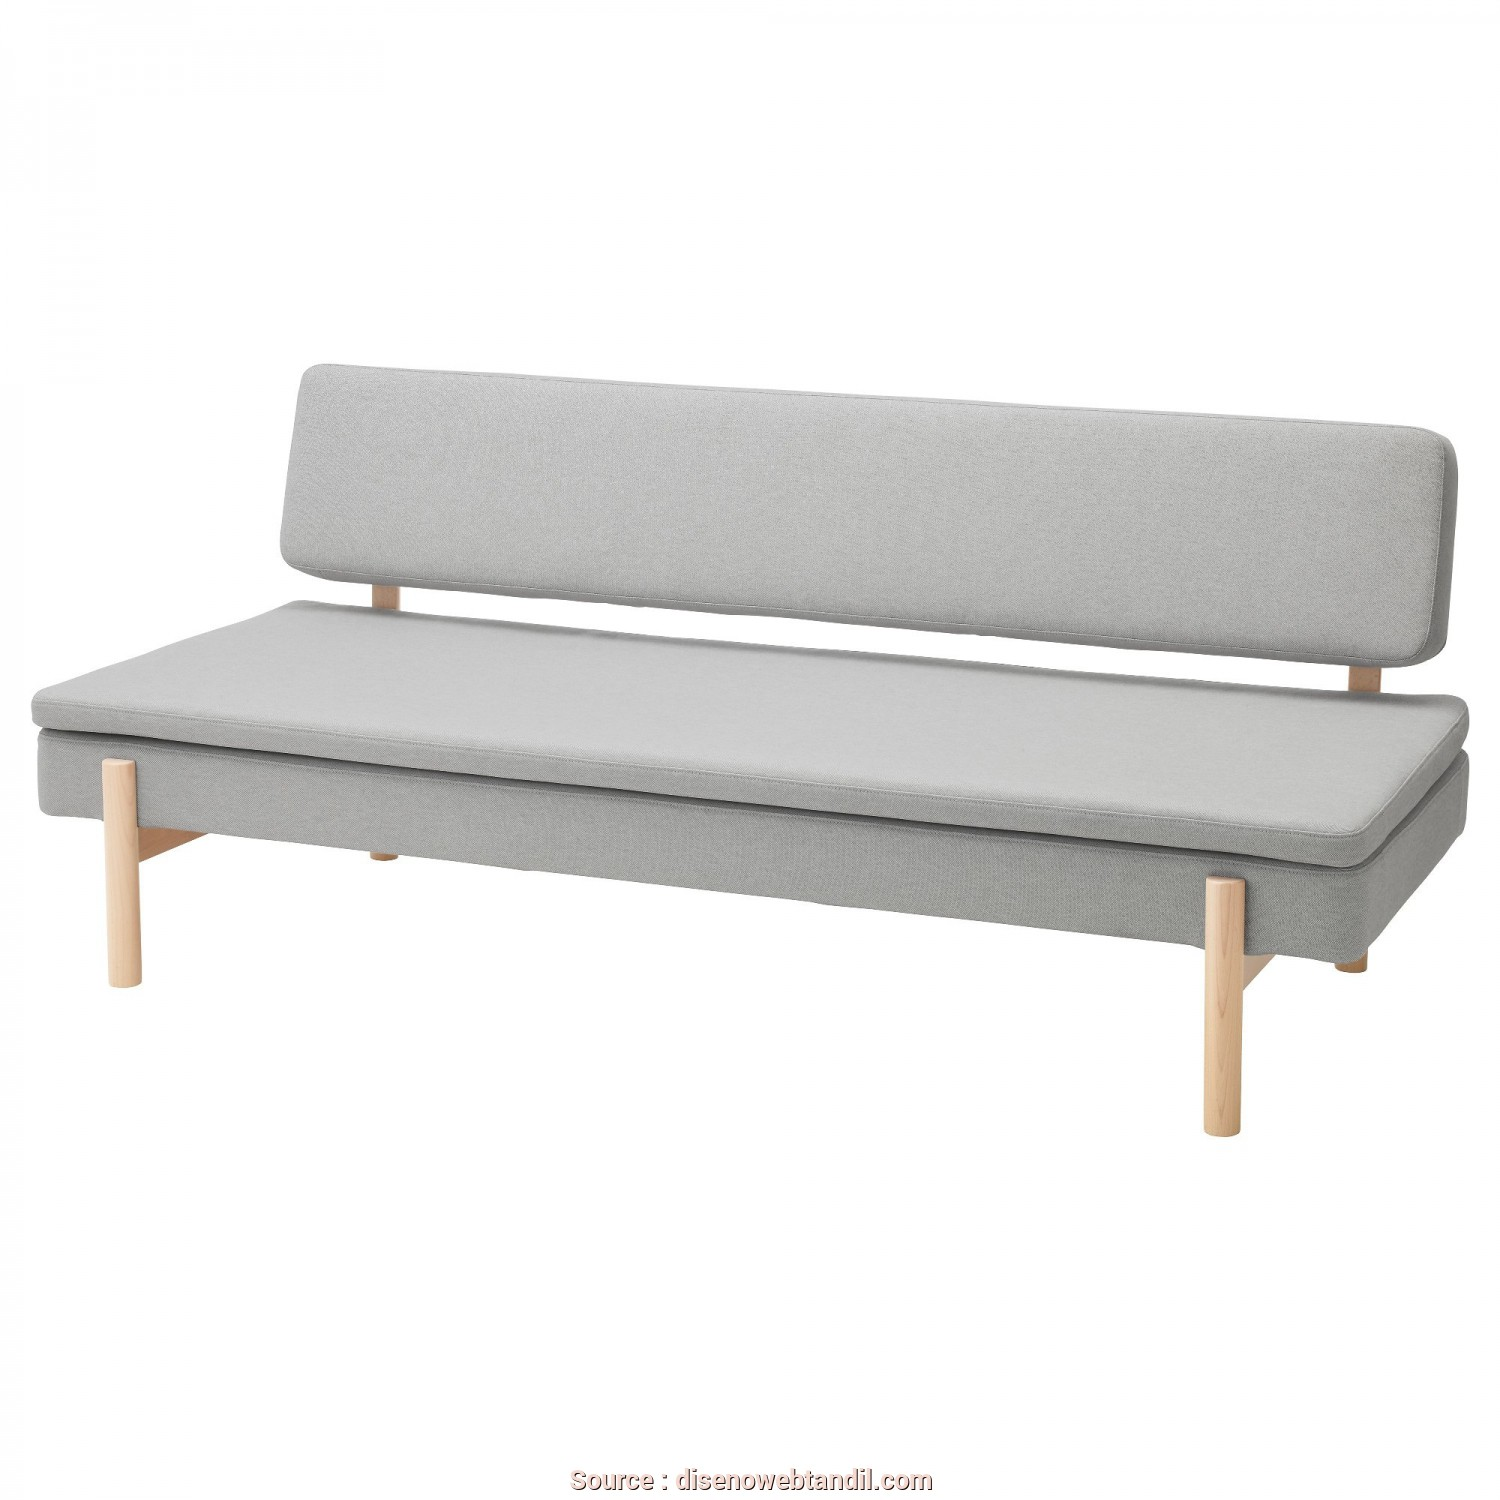 Ikea Backabro, Bettsofa, Migliore ... Fauteuils Canap S Convertibles Confortable, Cher IKEA Avec Ypperlig Canap C3 A9, 3 Places